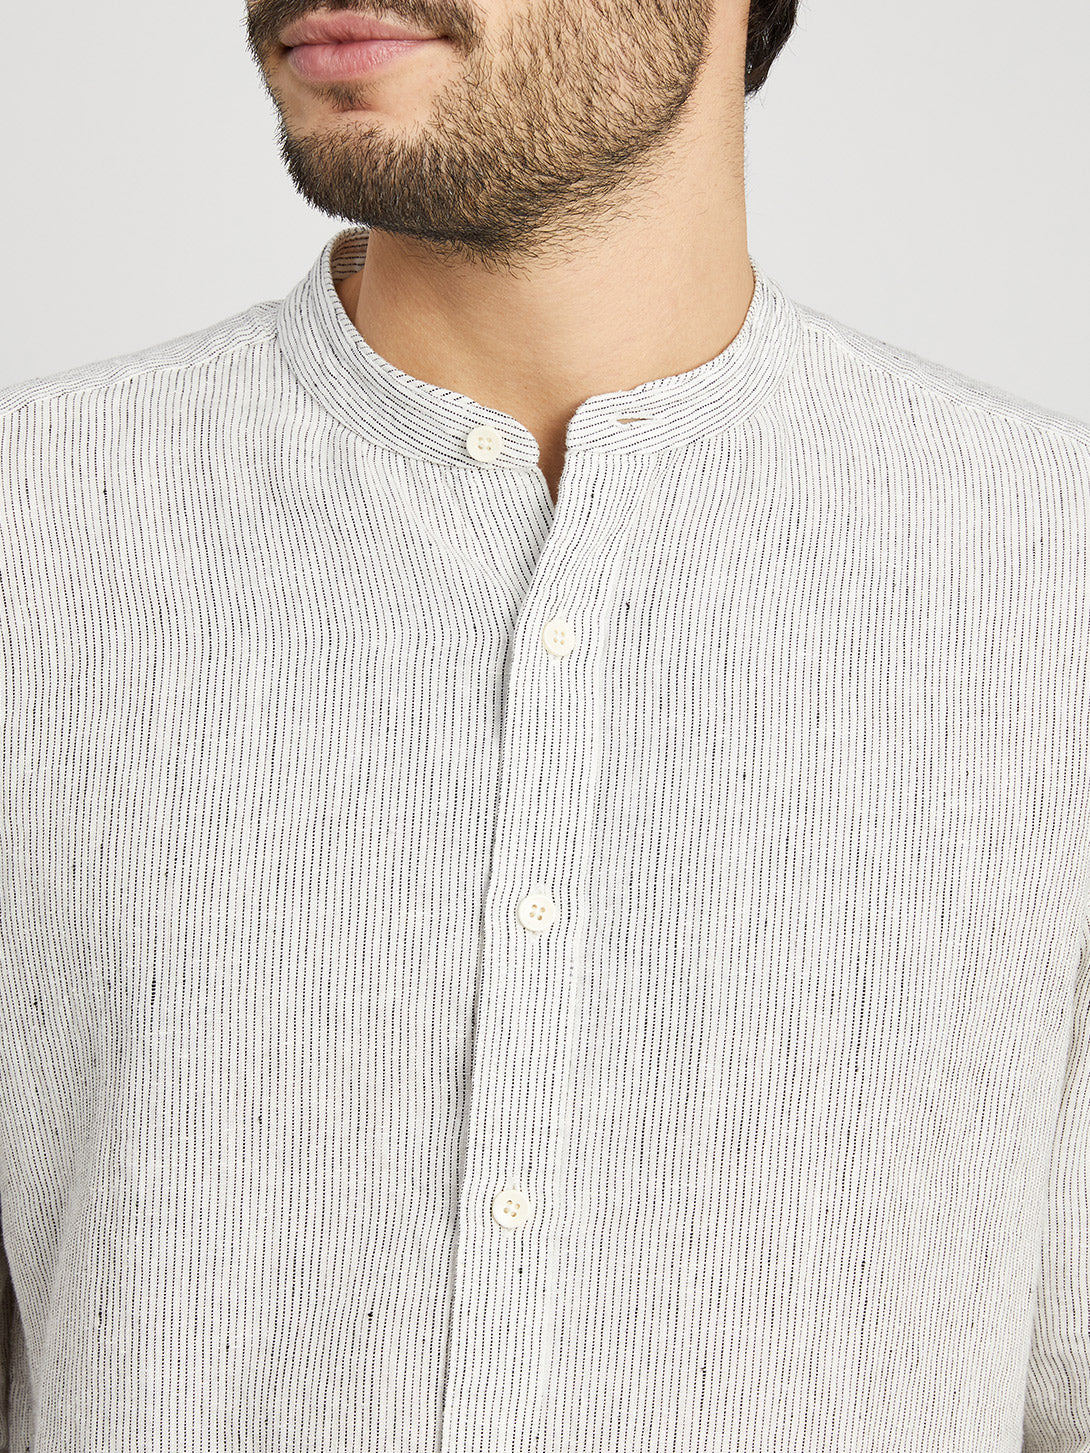 WHITE STRIPE button down shirt for men aleks linen shirt ons clothing